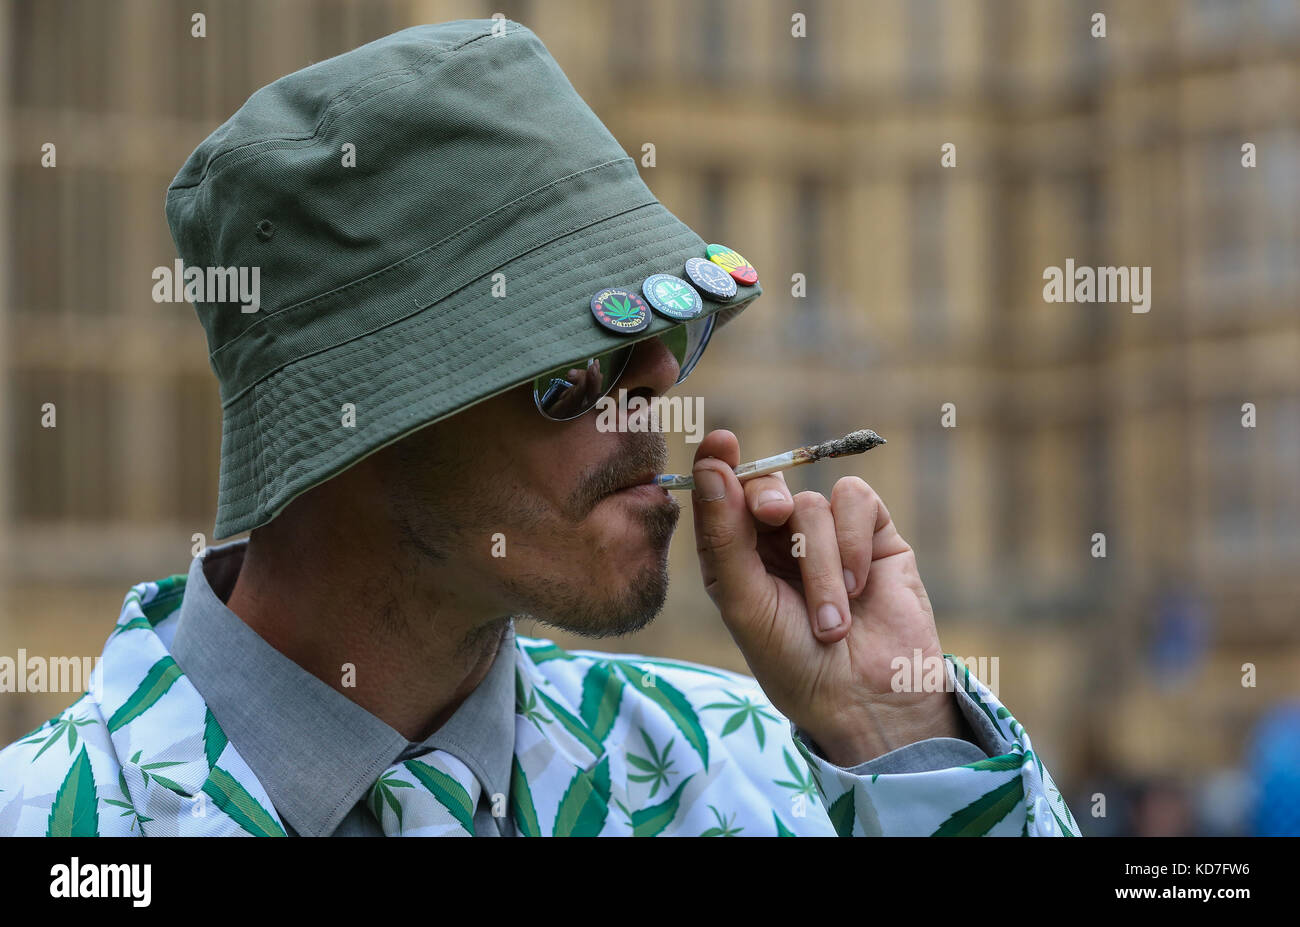 Westminster. London, UK. 10th October, 2017. A man smokes cannabis during the tea party. The protest organised by Stock Photo